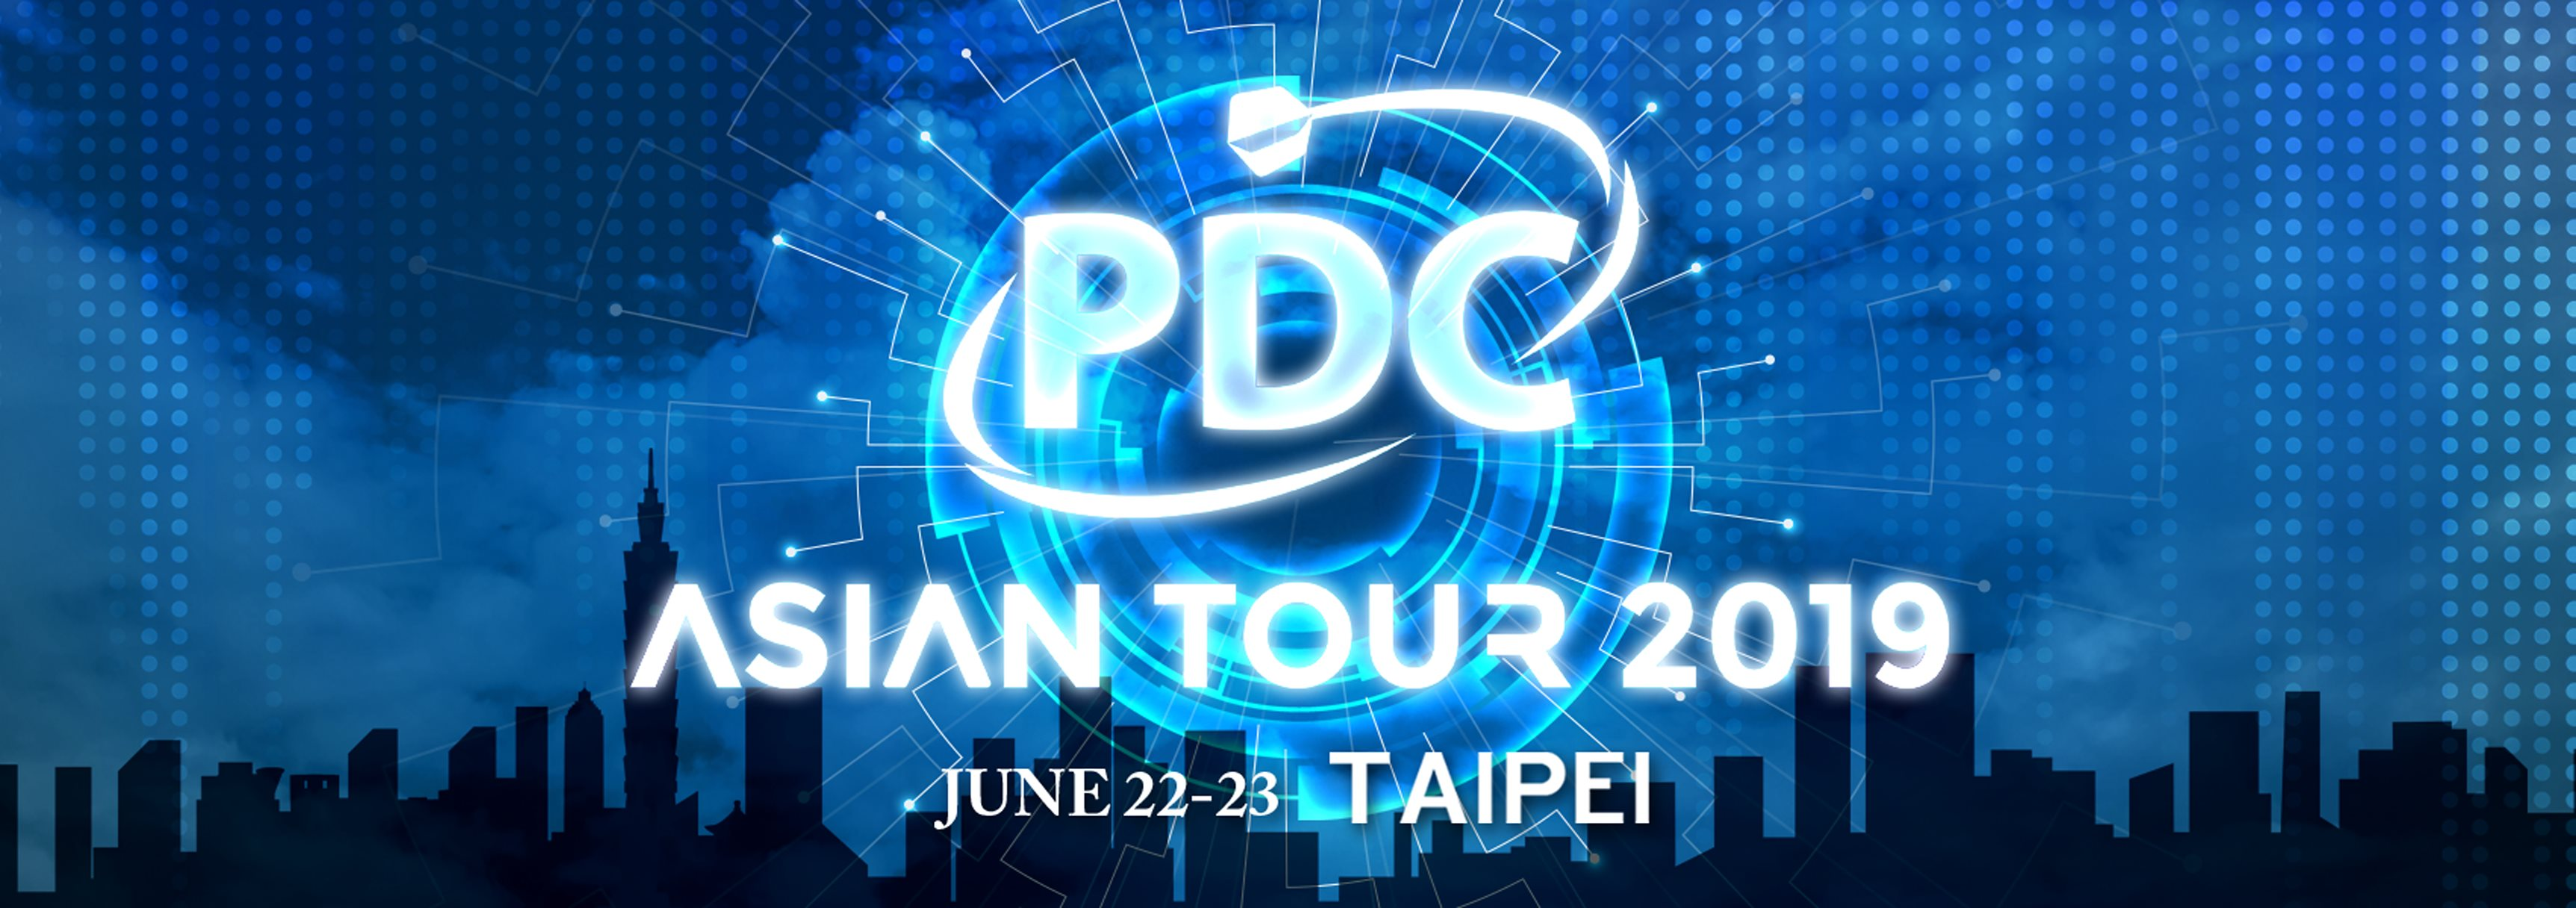 【PDC Asian Tour 2019】STAGE 7&8